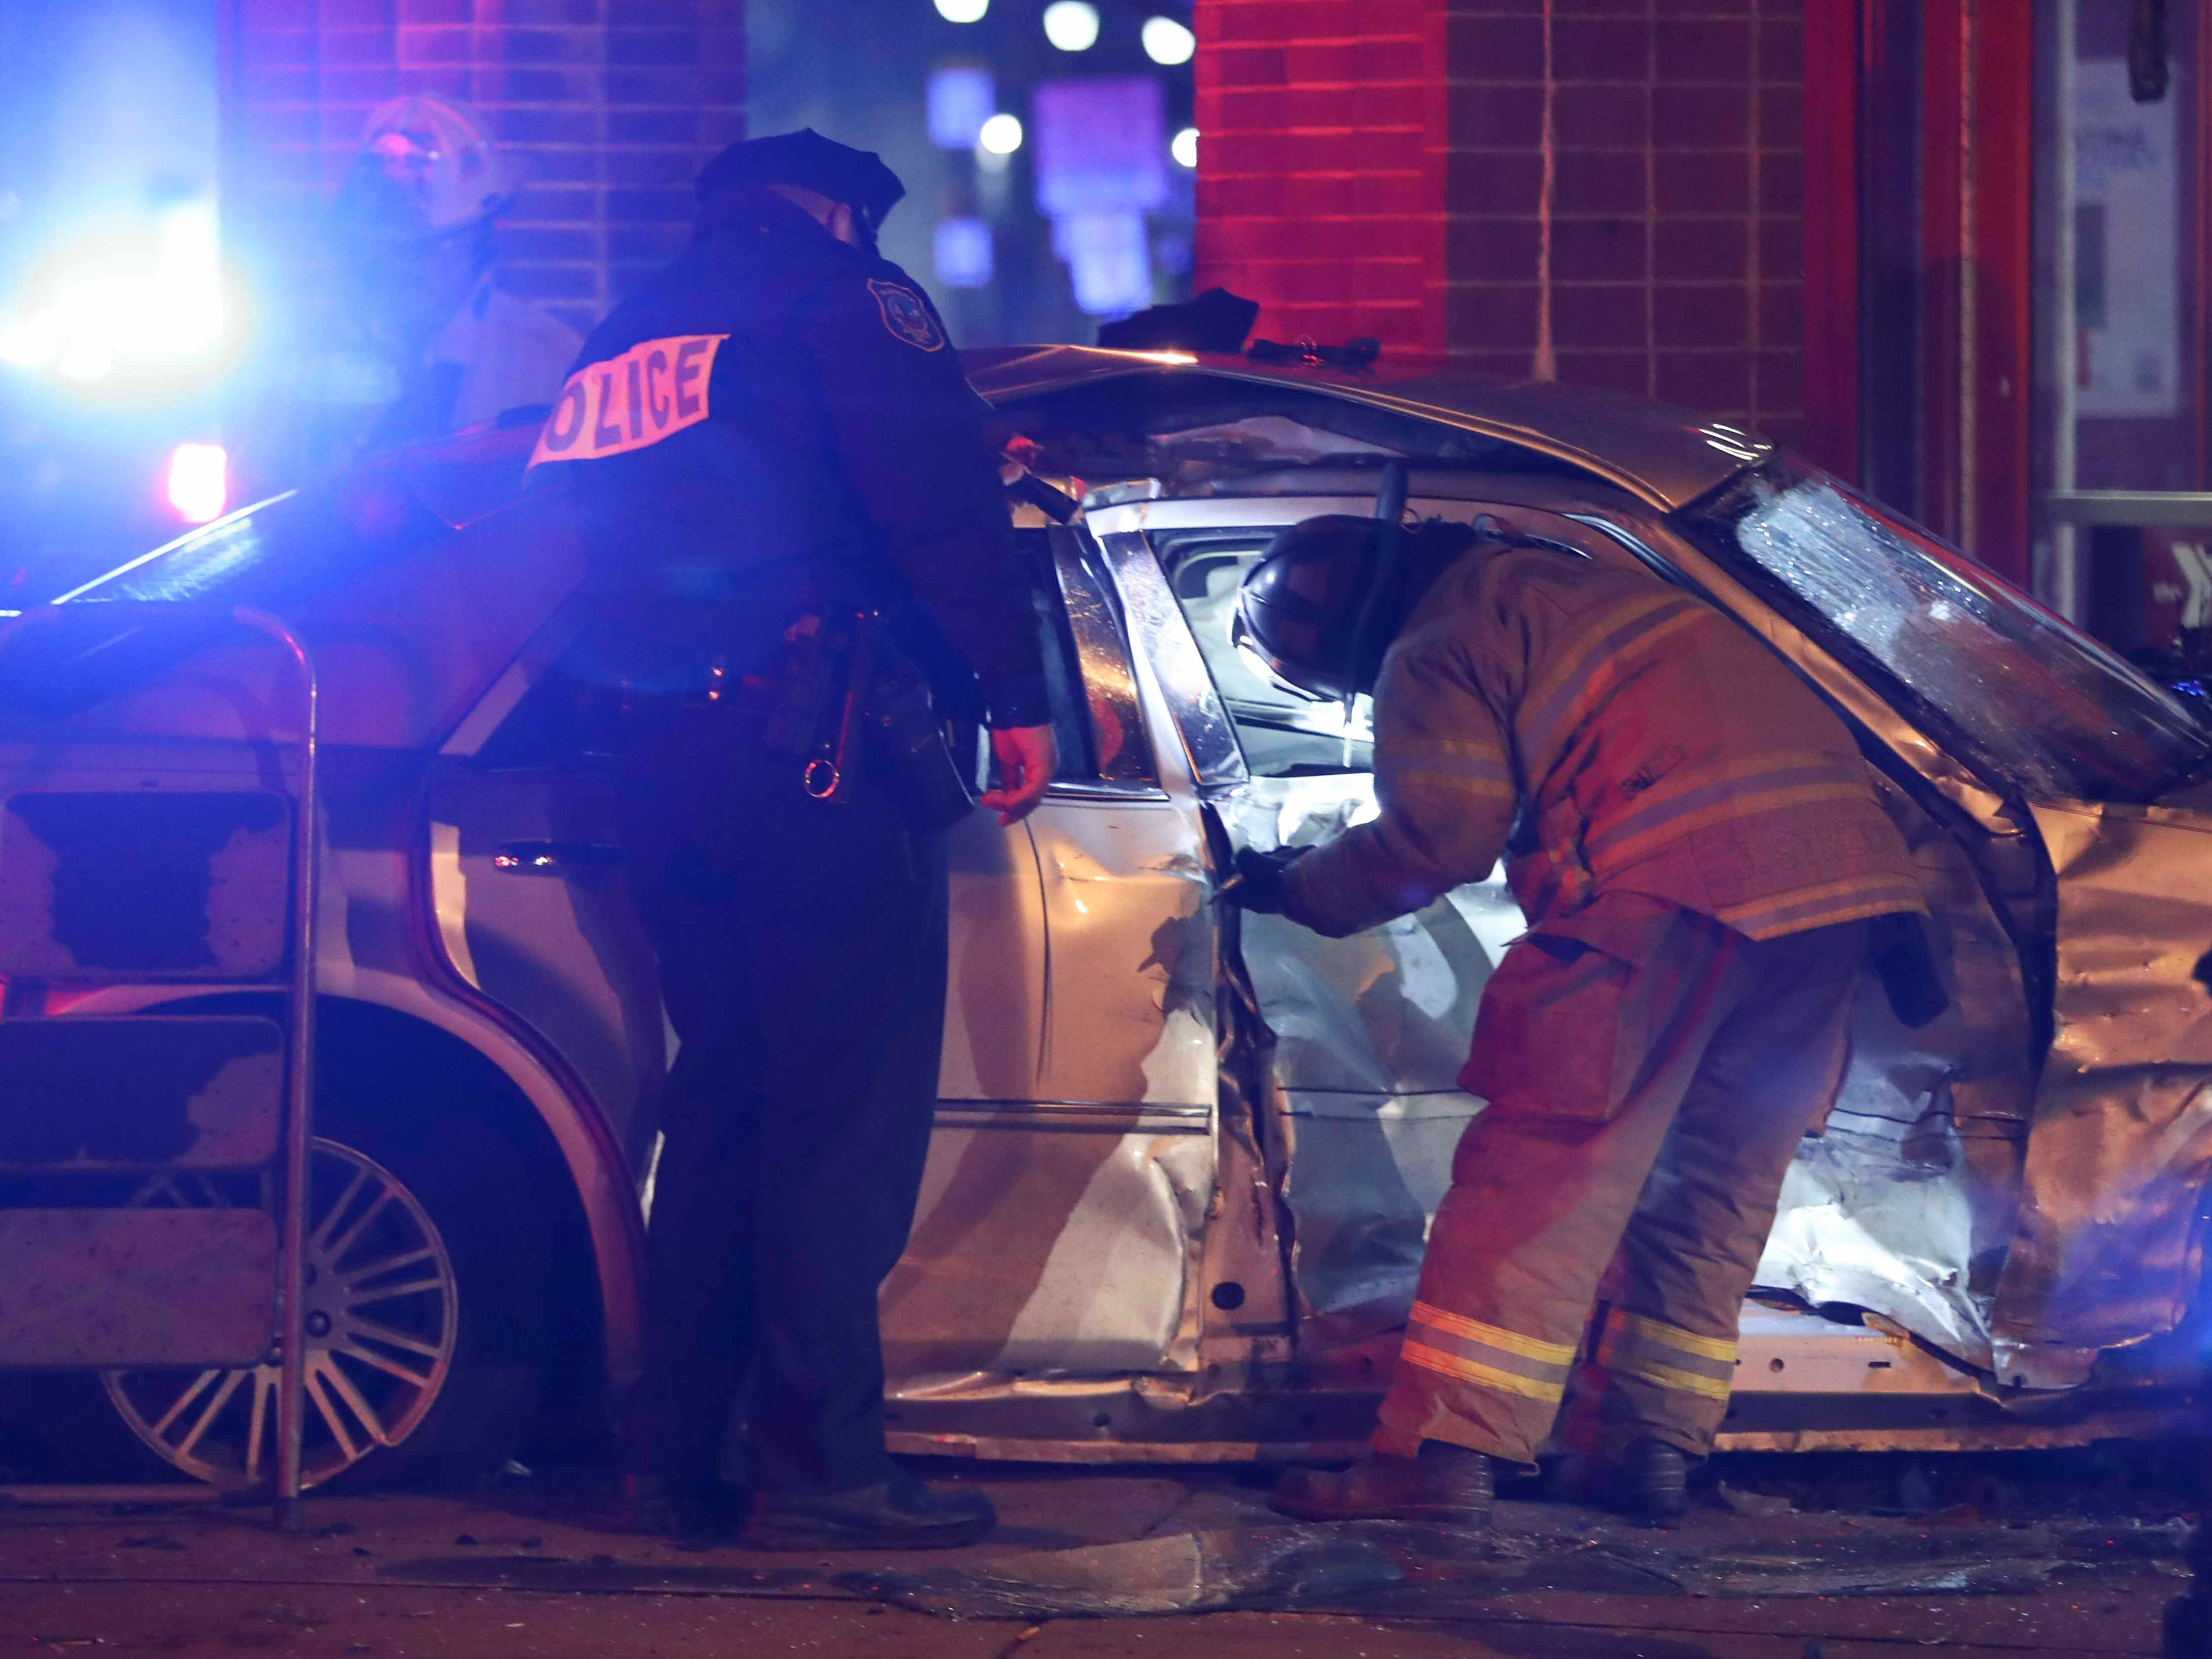 Wilmington police officers and fire fighters work in the aftermath of a two-vehicle accident that injured several people at the intersection of E. 10th and Walnut Streets about 10:15 p.m. Saturday.